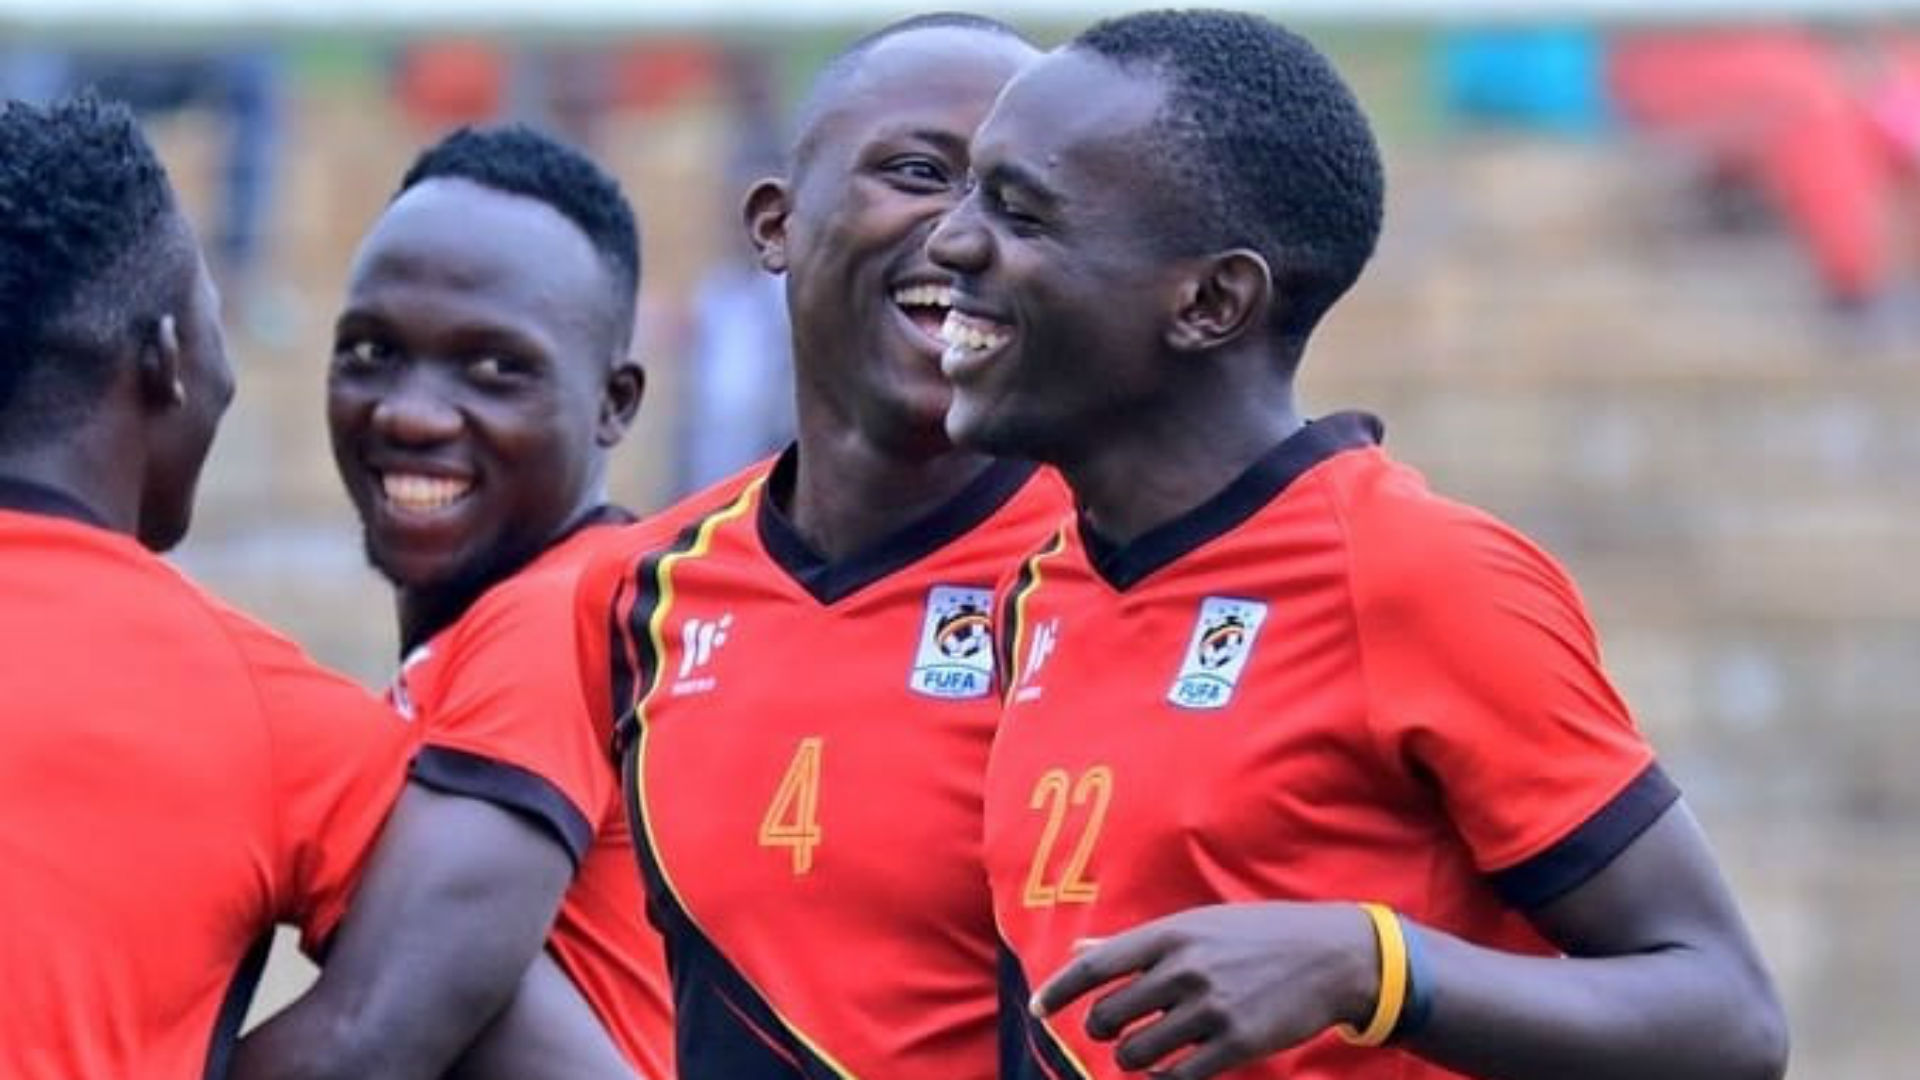 Cameroon 1-1 Uganda: Cranes battle for draw in pre-Chan competition